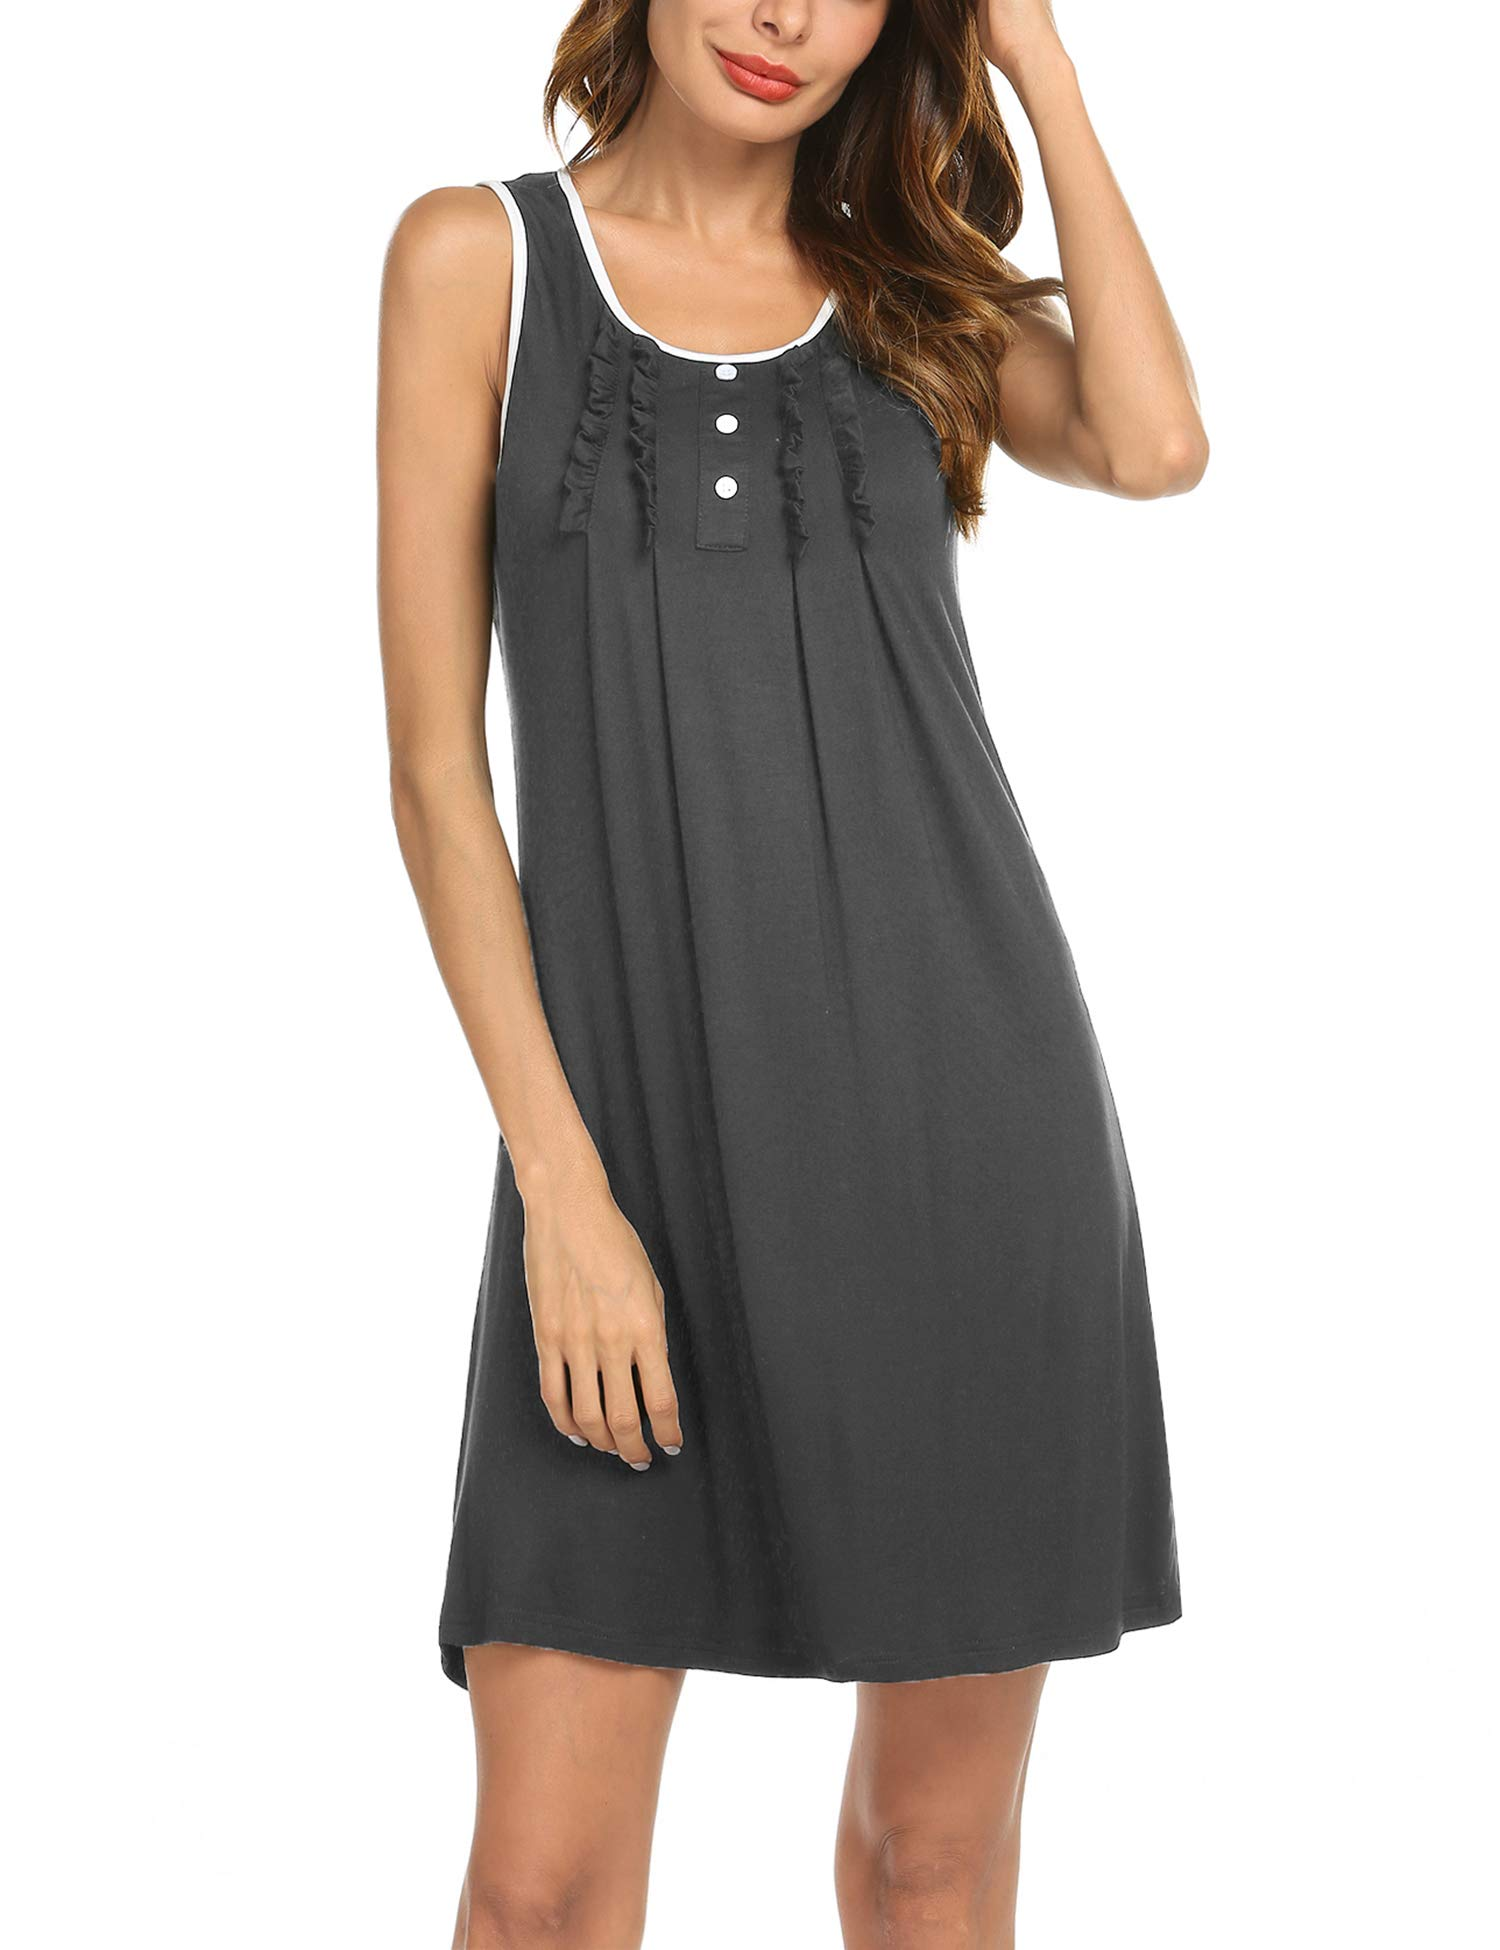 6eaa03c785 Hotouch Nightgowns Womens Cotton Night Shirts Sleeveless Sleep Dress S-XXL  product image